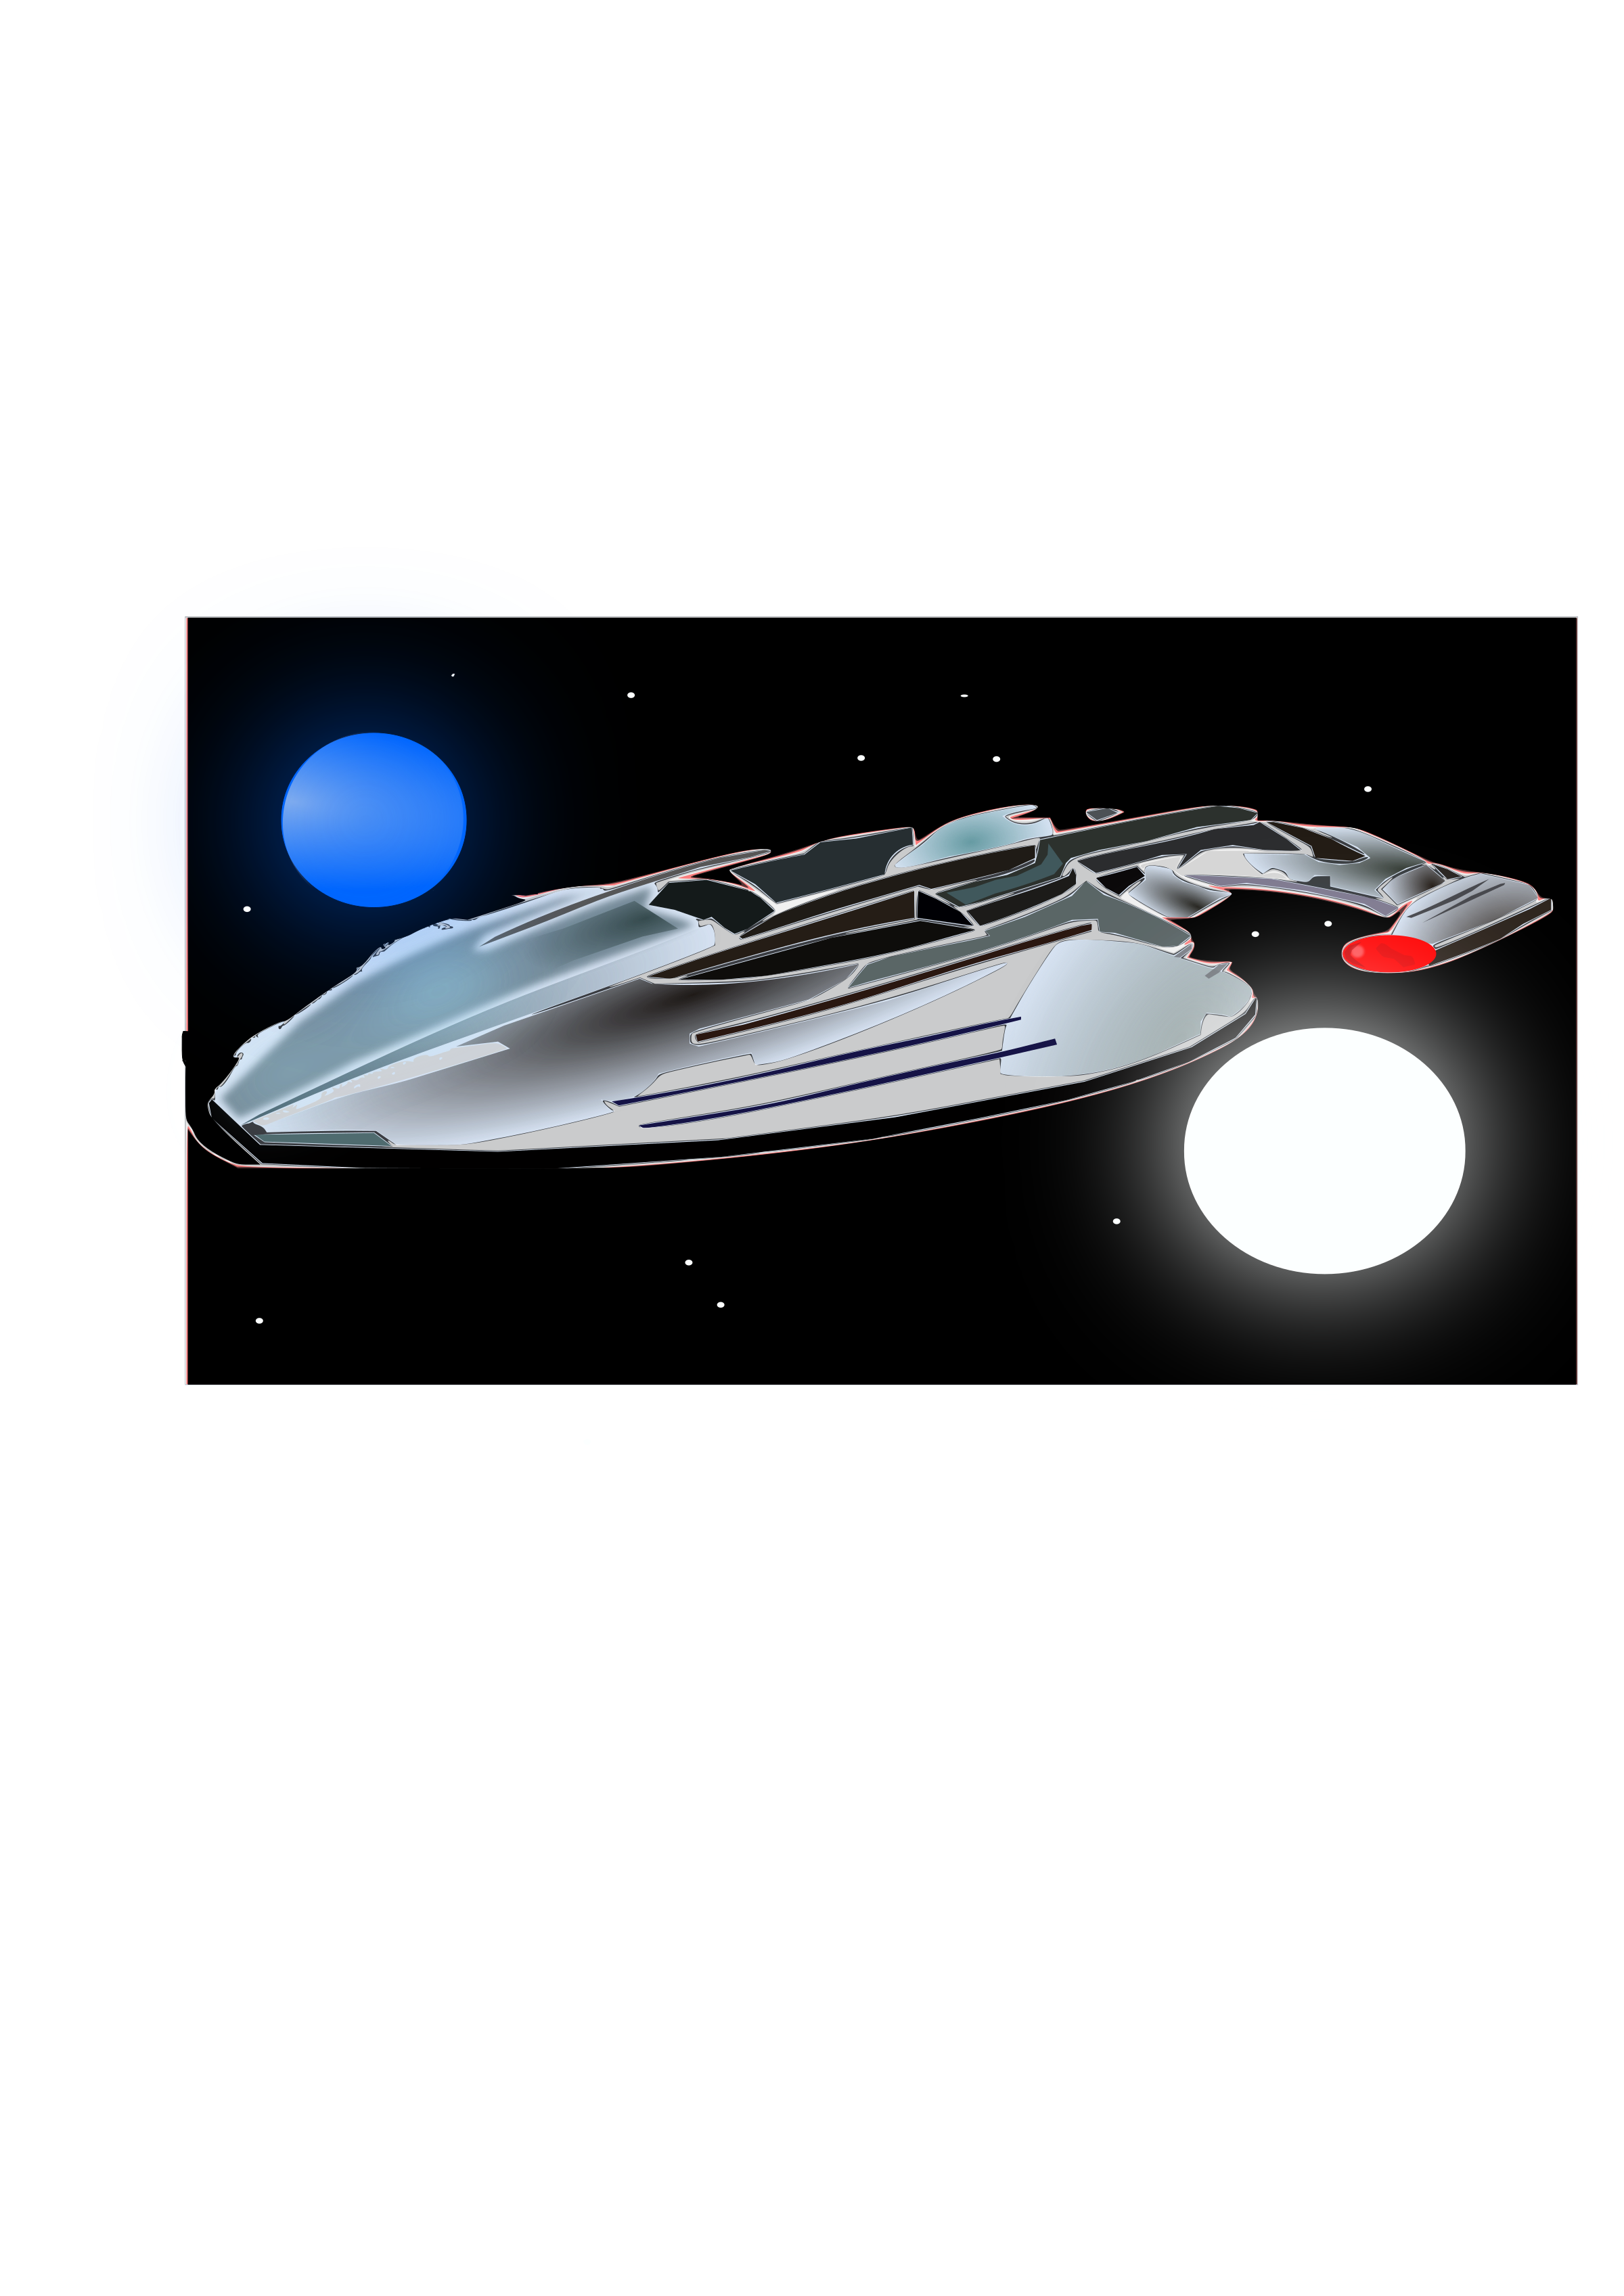 Galaxy clipart space scene. My first inkscape big